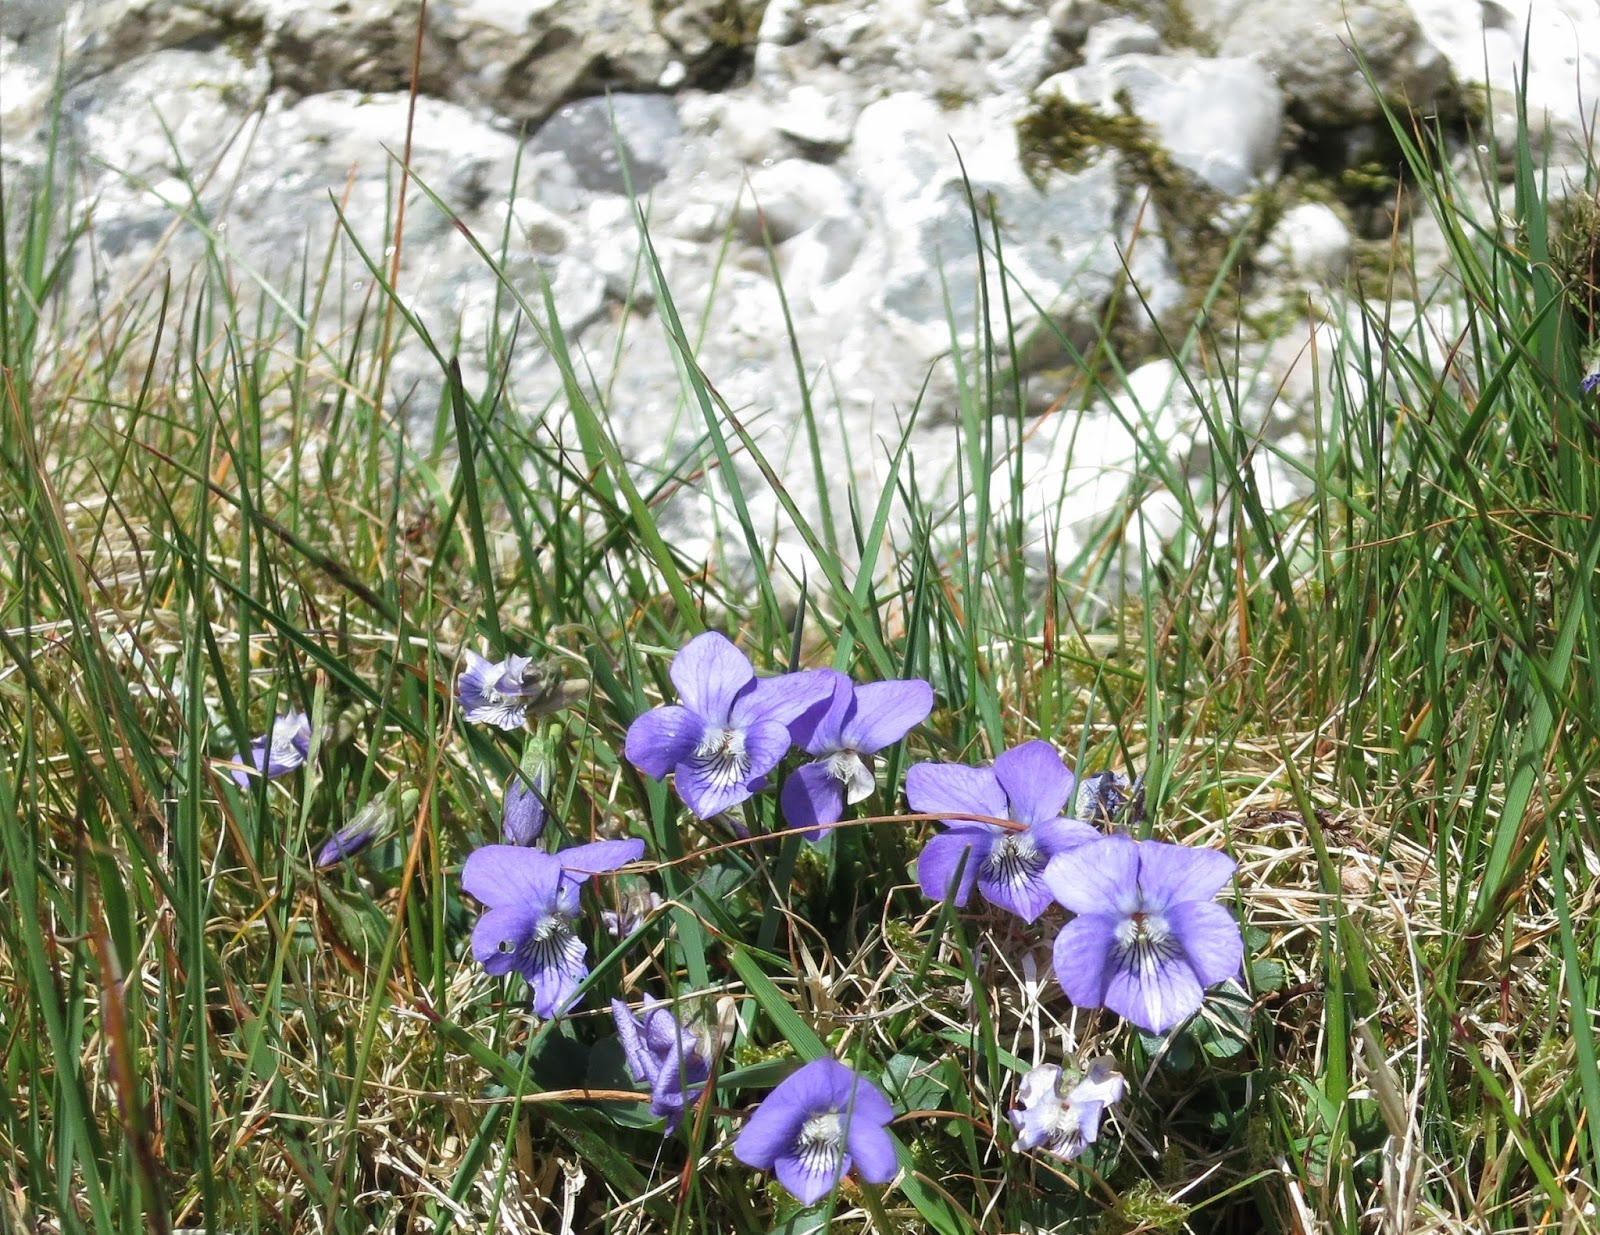 Wild violets beside one of the boulders.